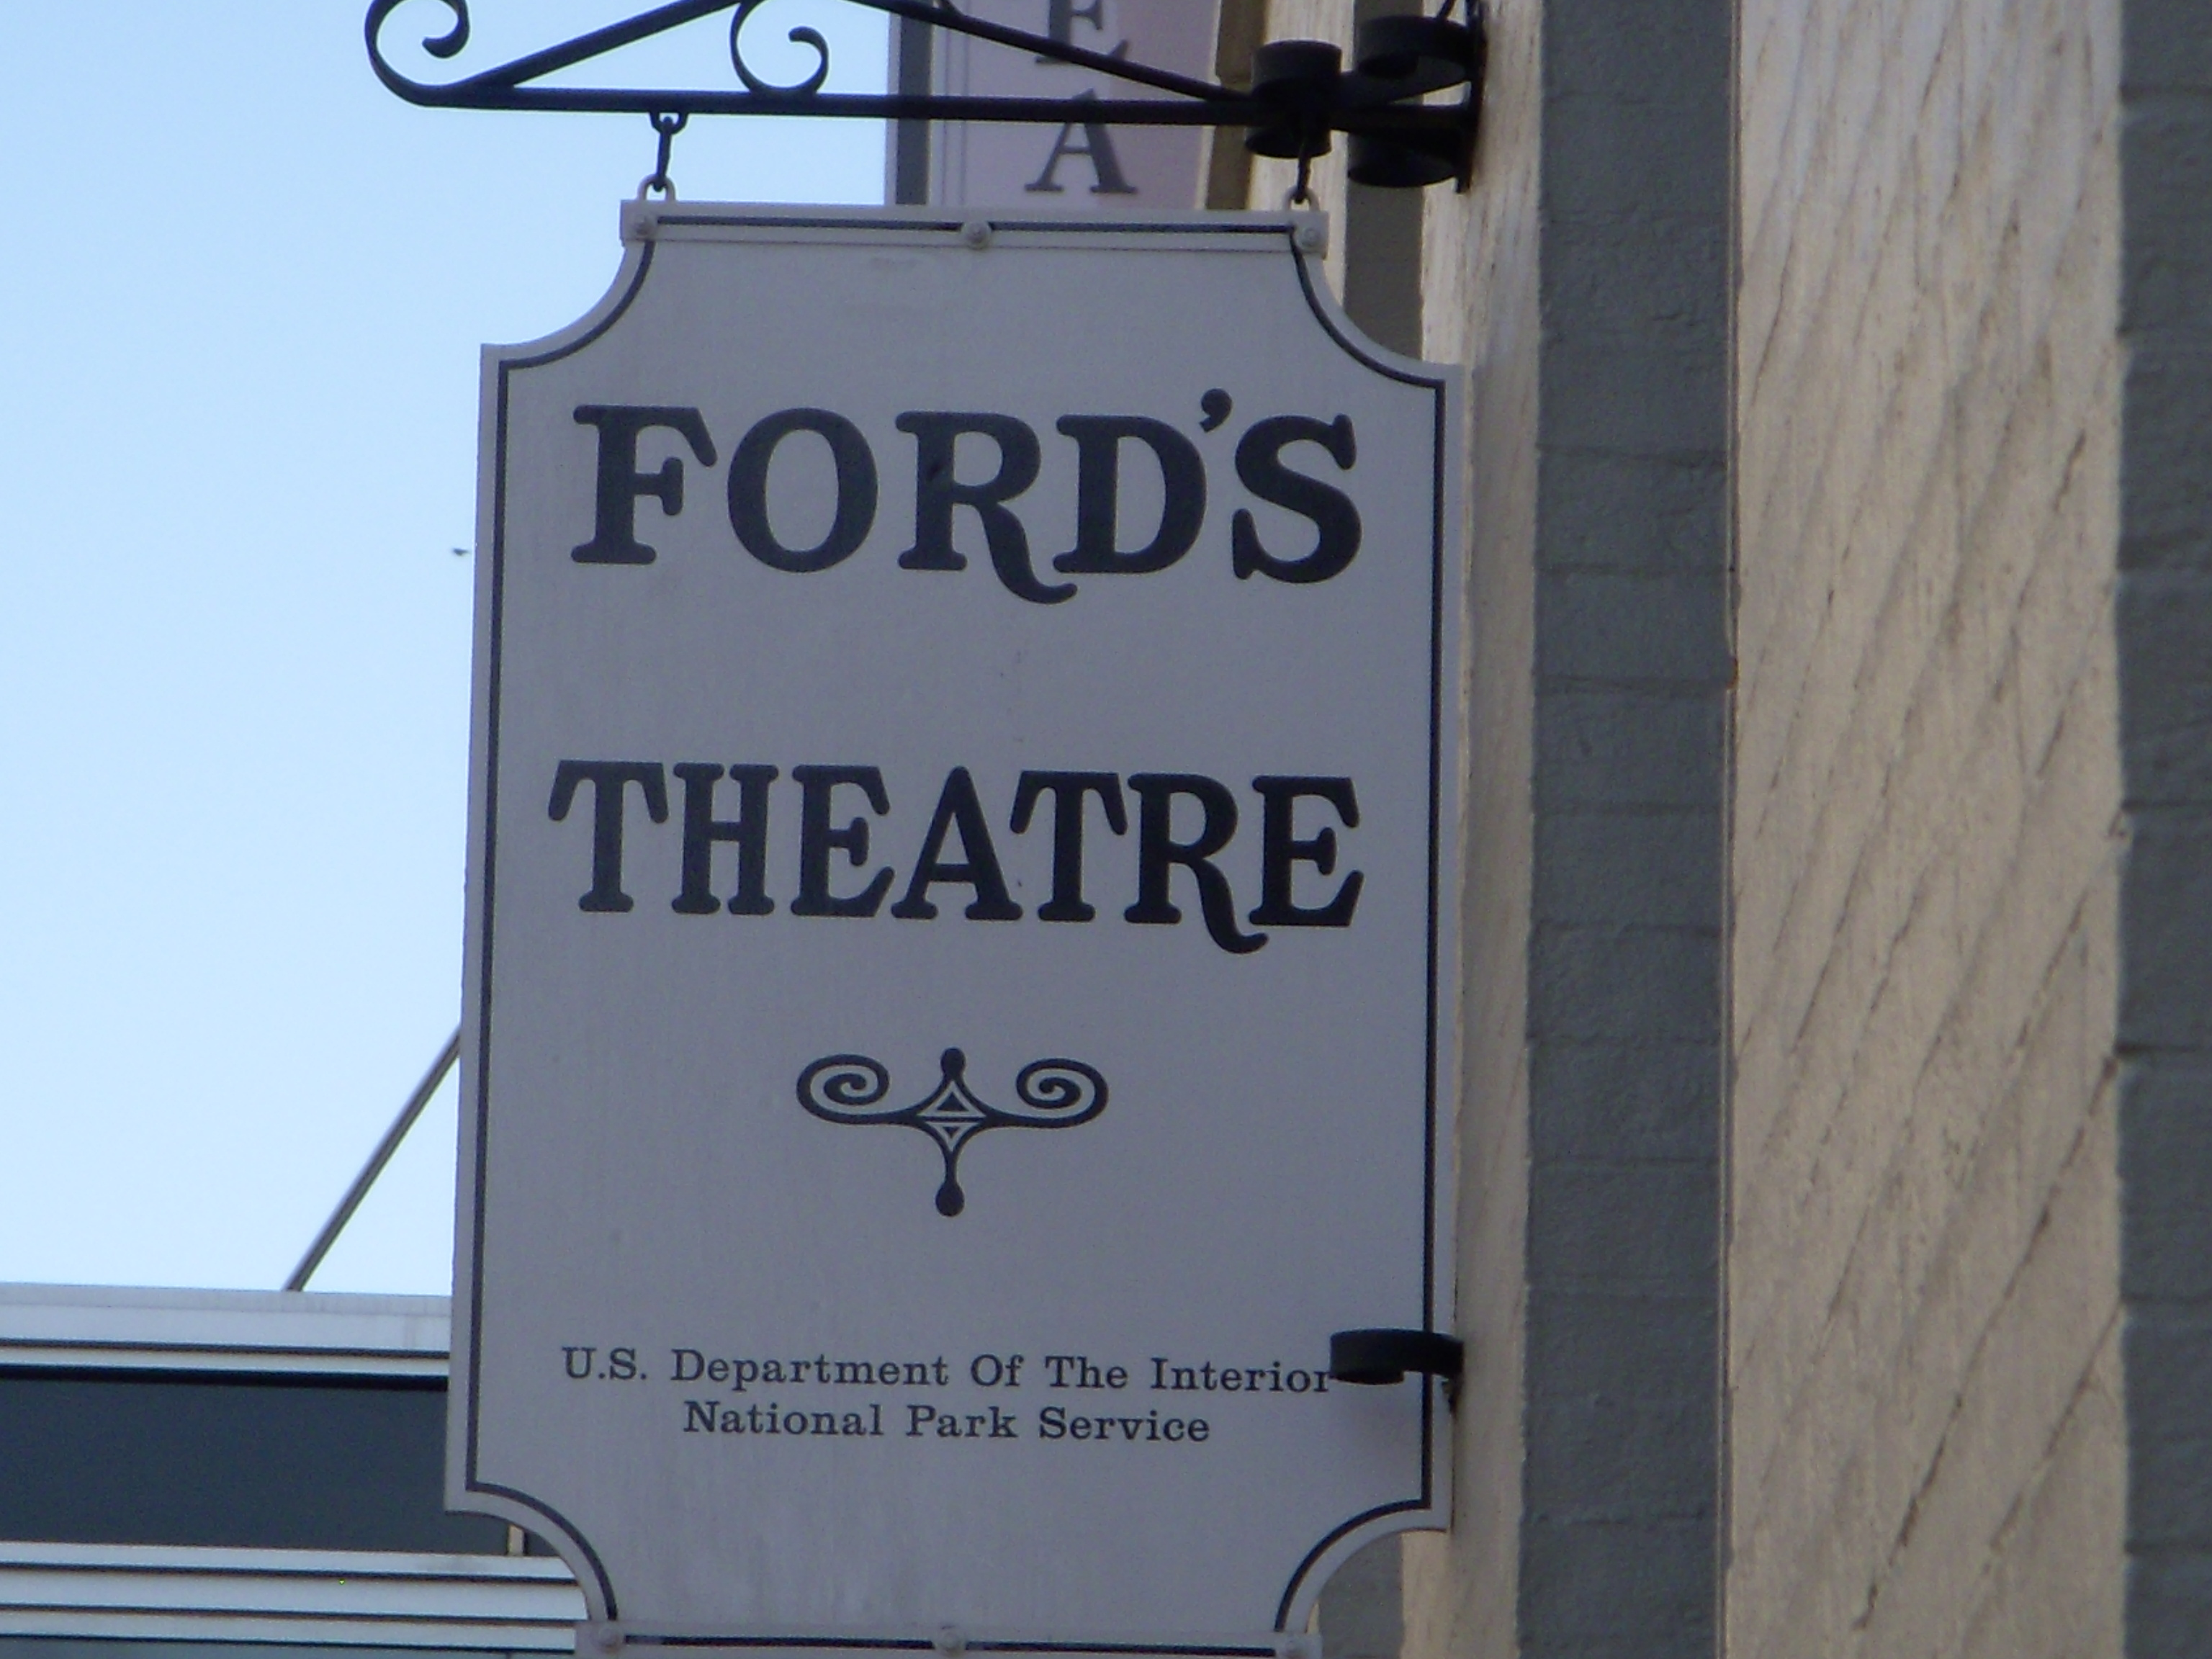 file:ford's theater - wikimedia commons